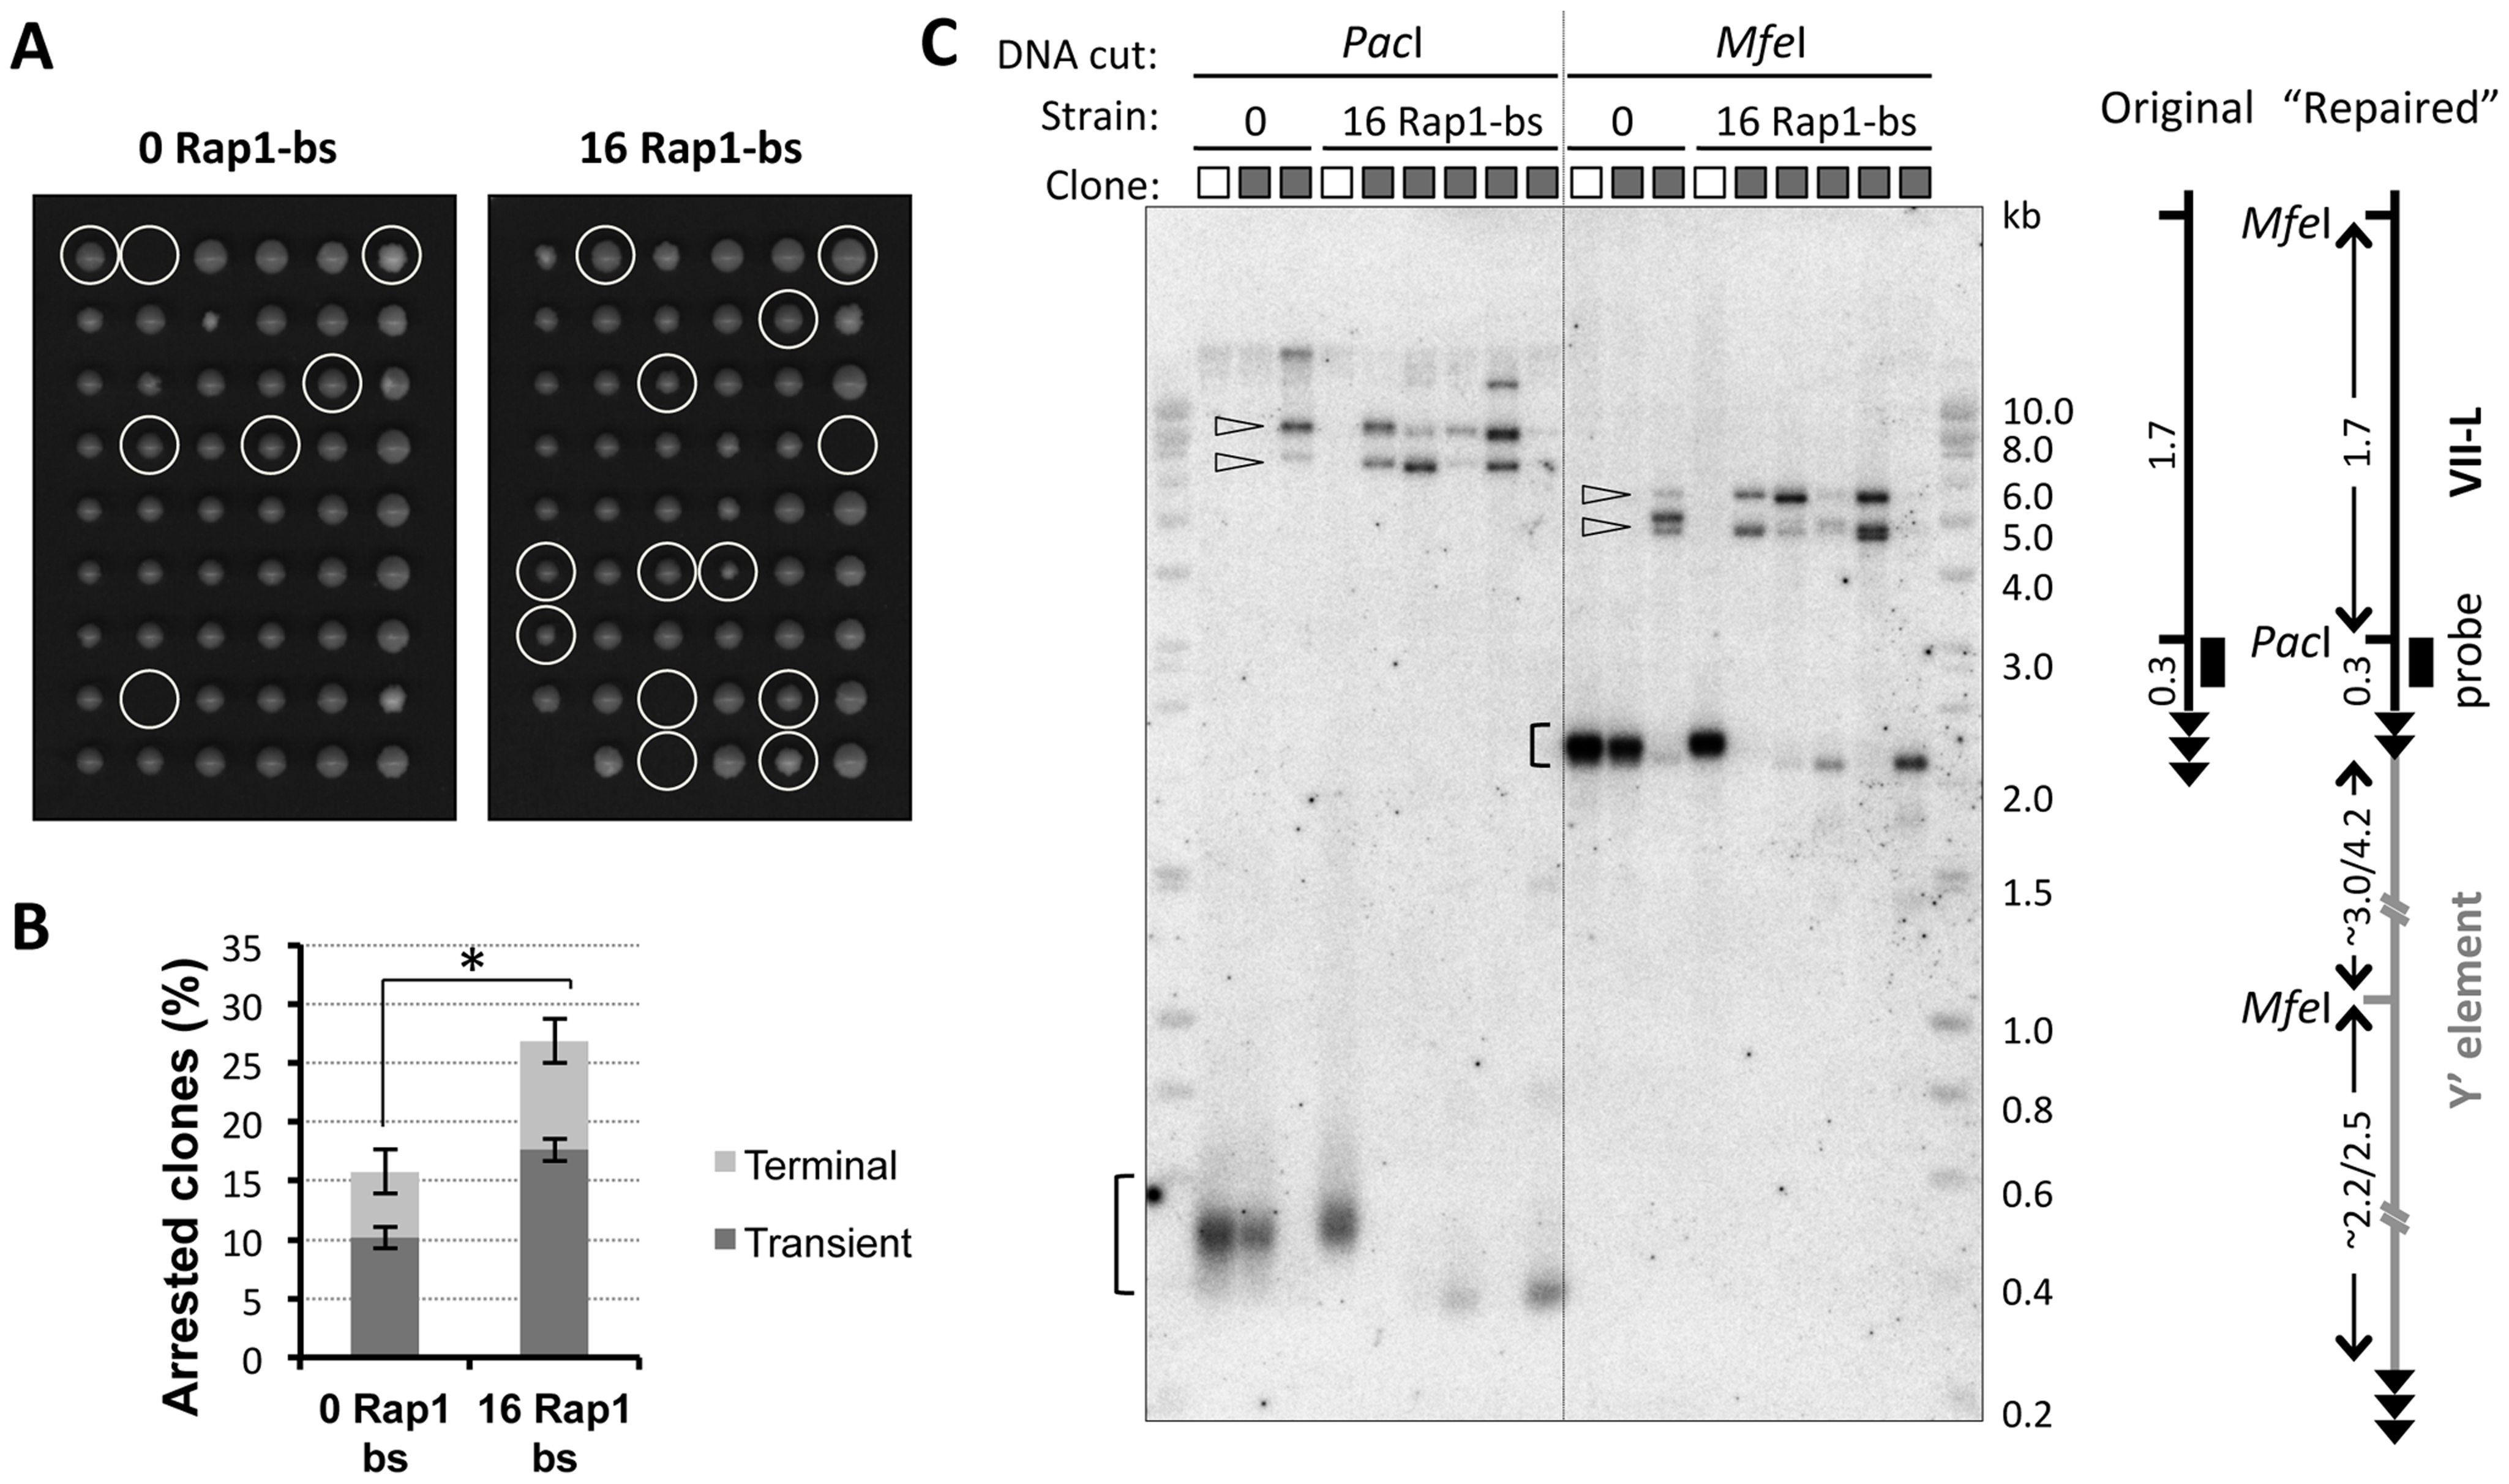 Clones derived from transiently arrested cells exhibit VII-L end rearrangement consistent with Y′ element translocation.